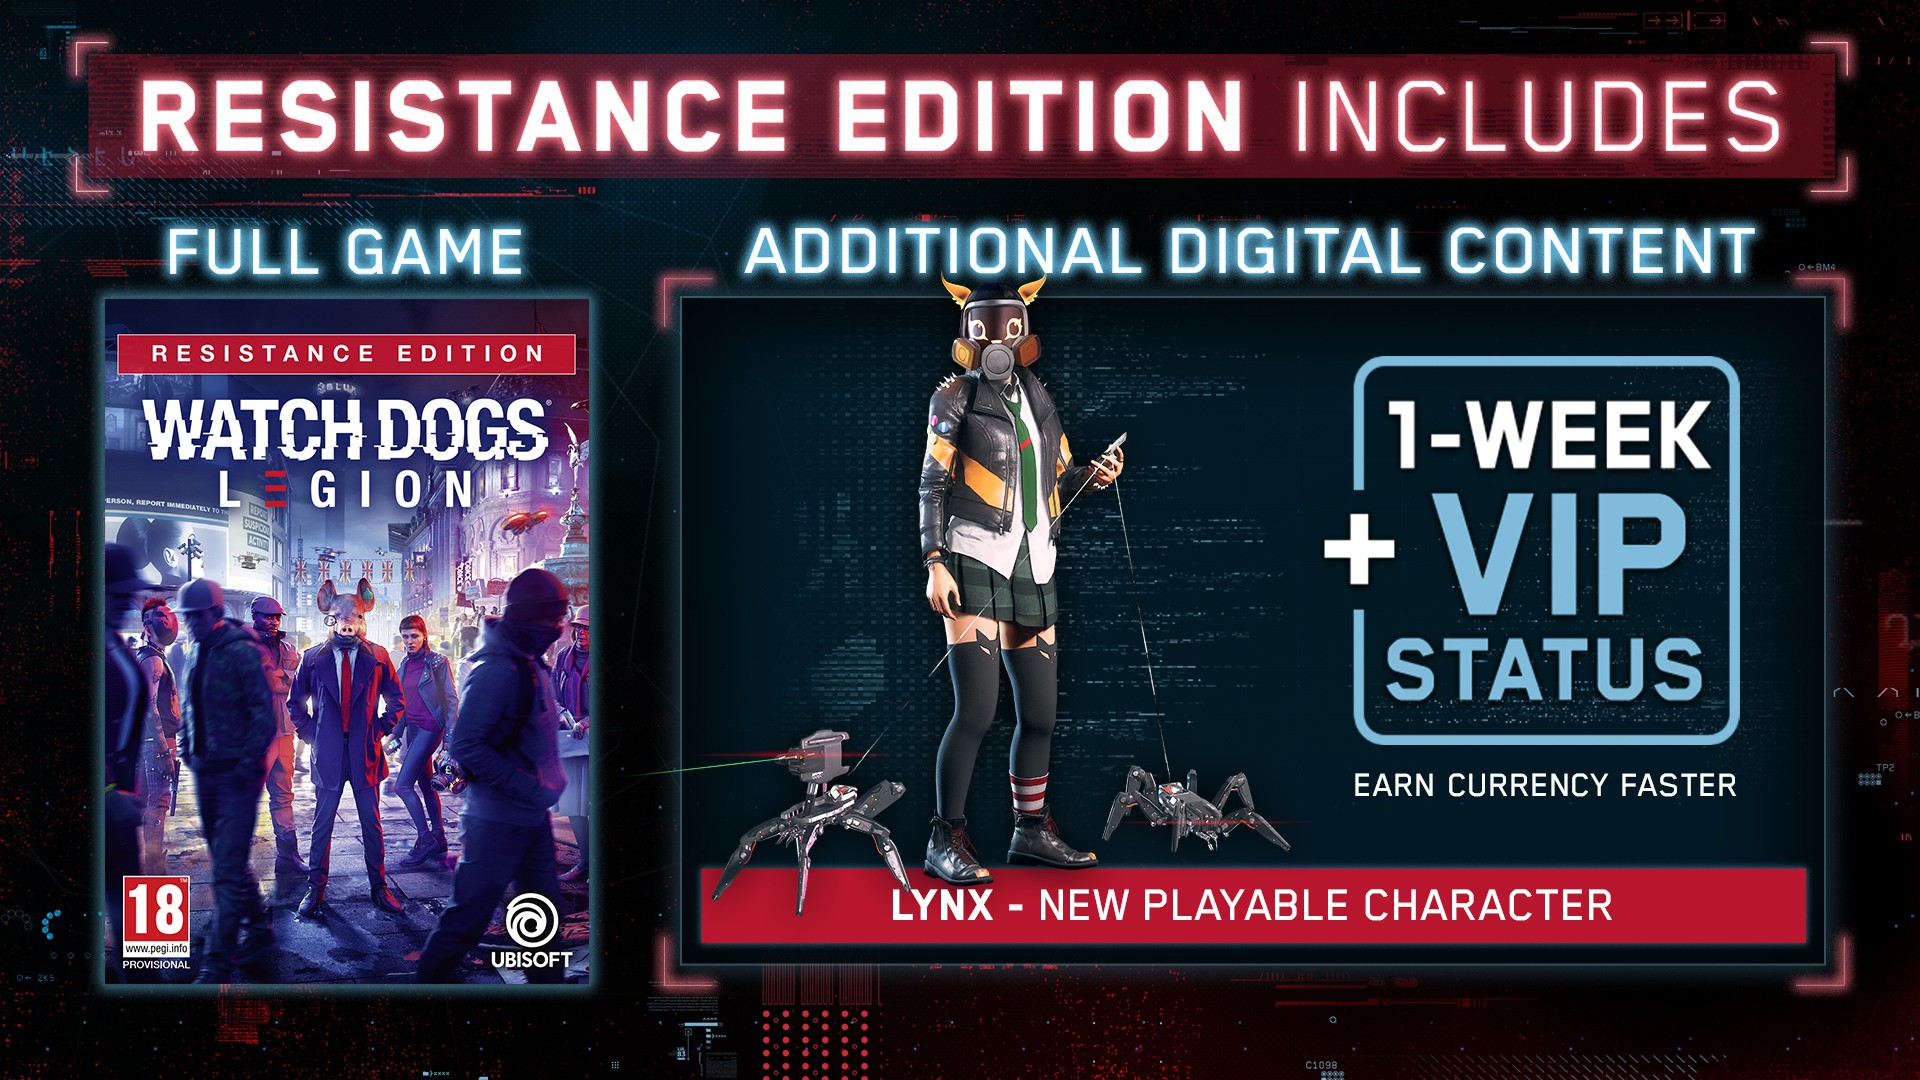 Watch Dogs Legion Resistance Edition + Preorder Bonus